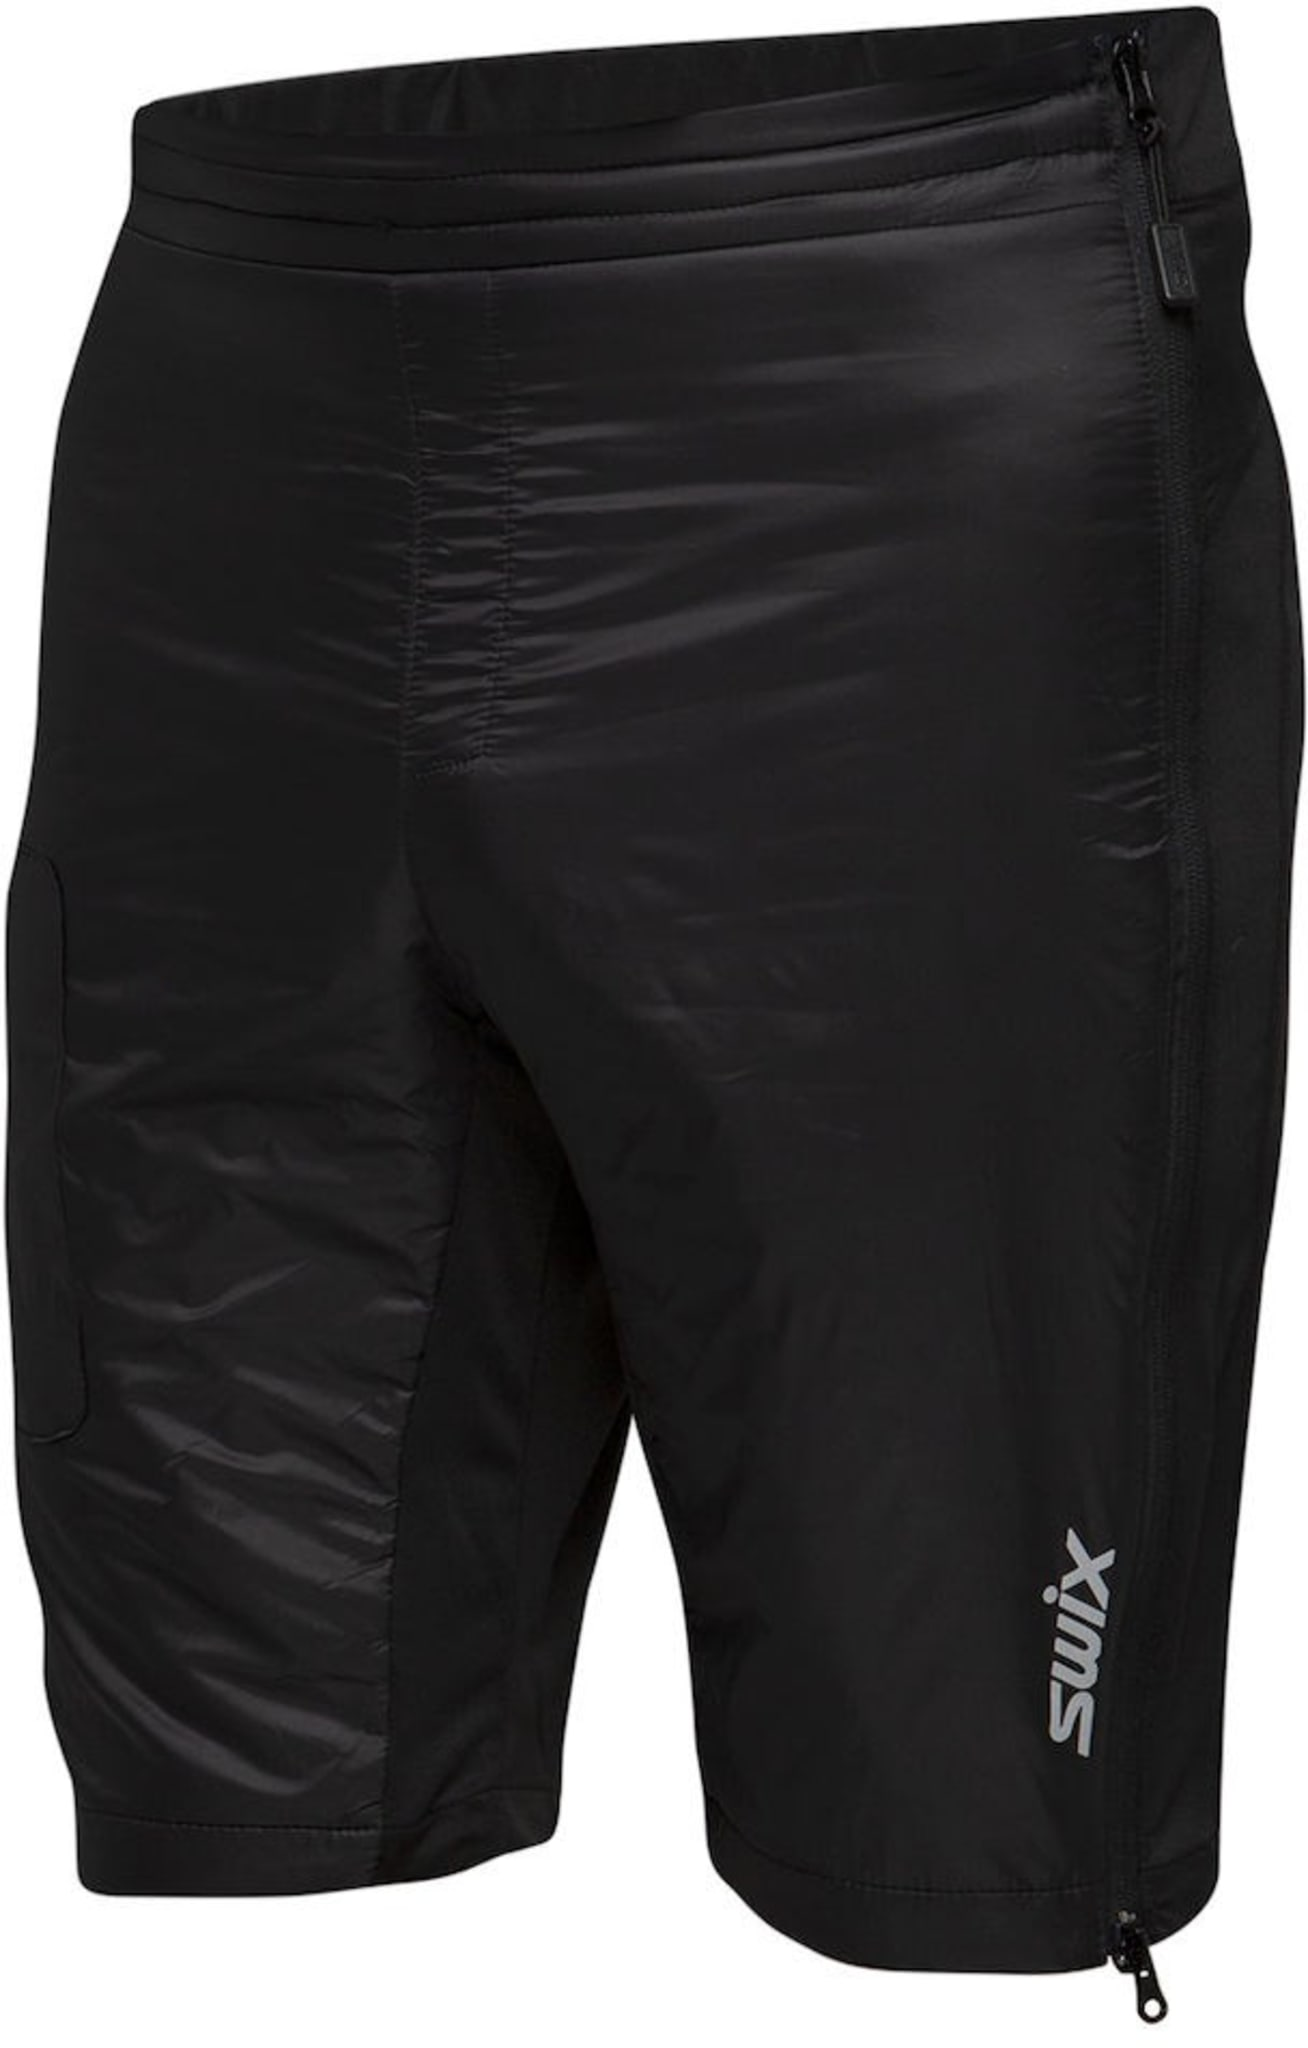 Menali Insulated Shorts 2.0 M